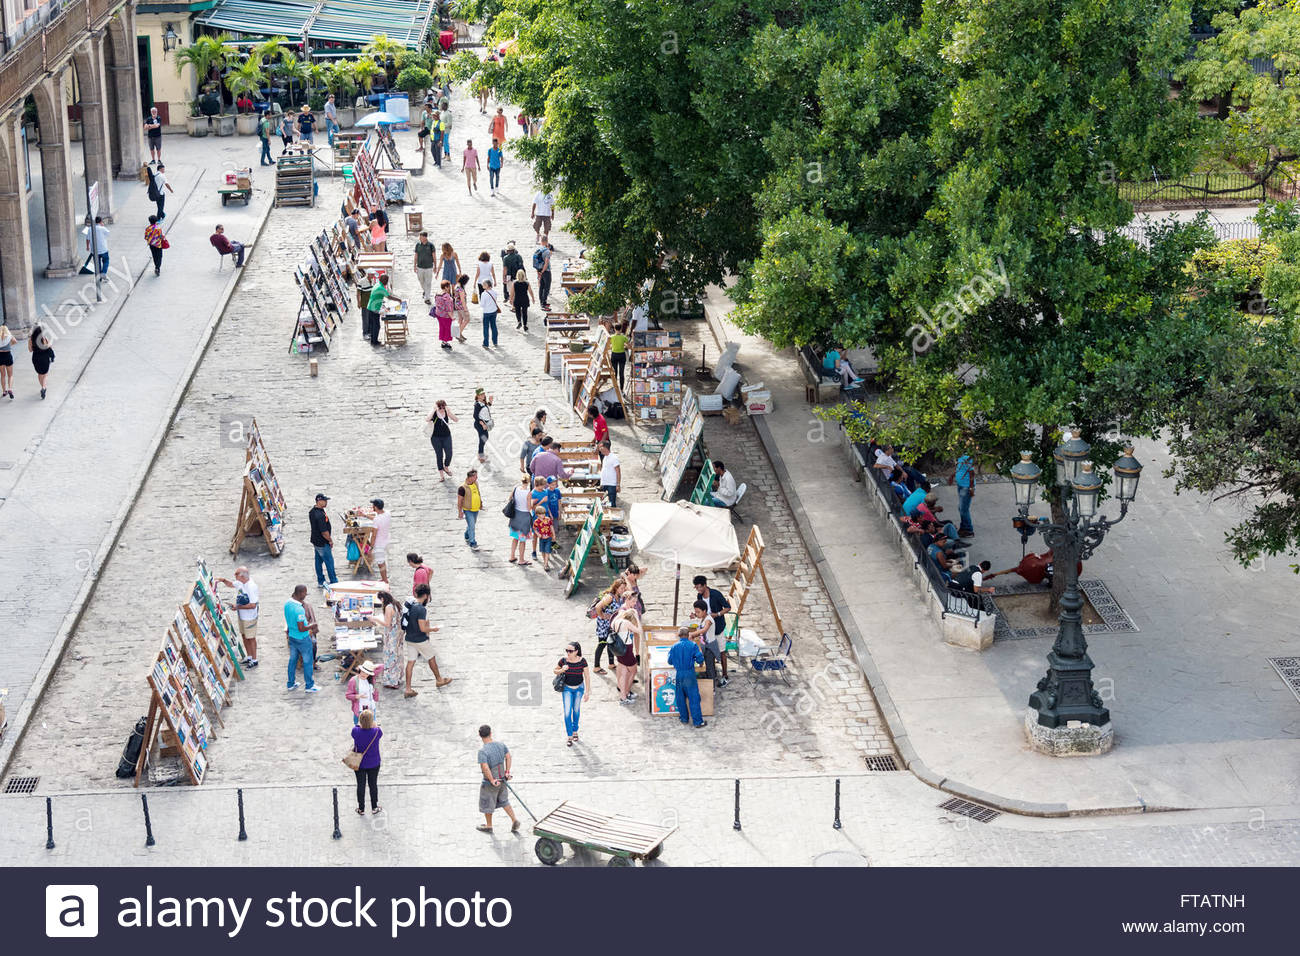 Old Havana Plaza de Armas or Book Market aerial view: Tourists buying painting and books at antiquities stand - Stock Image